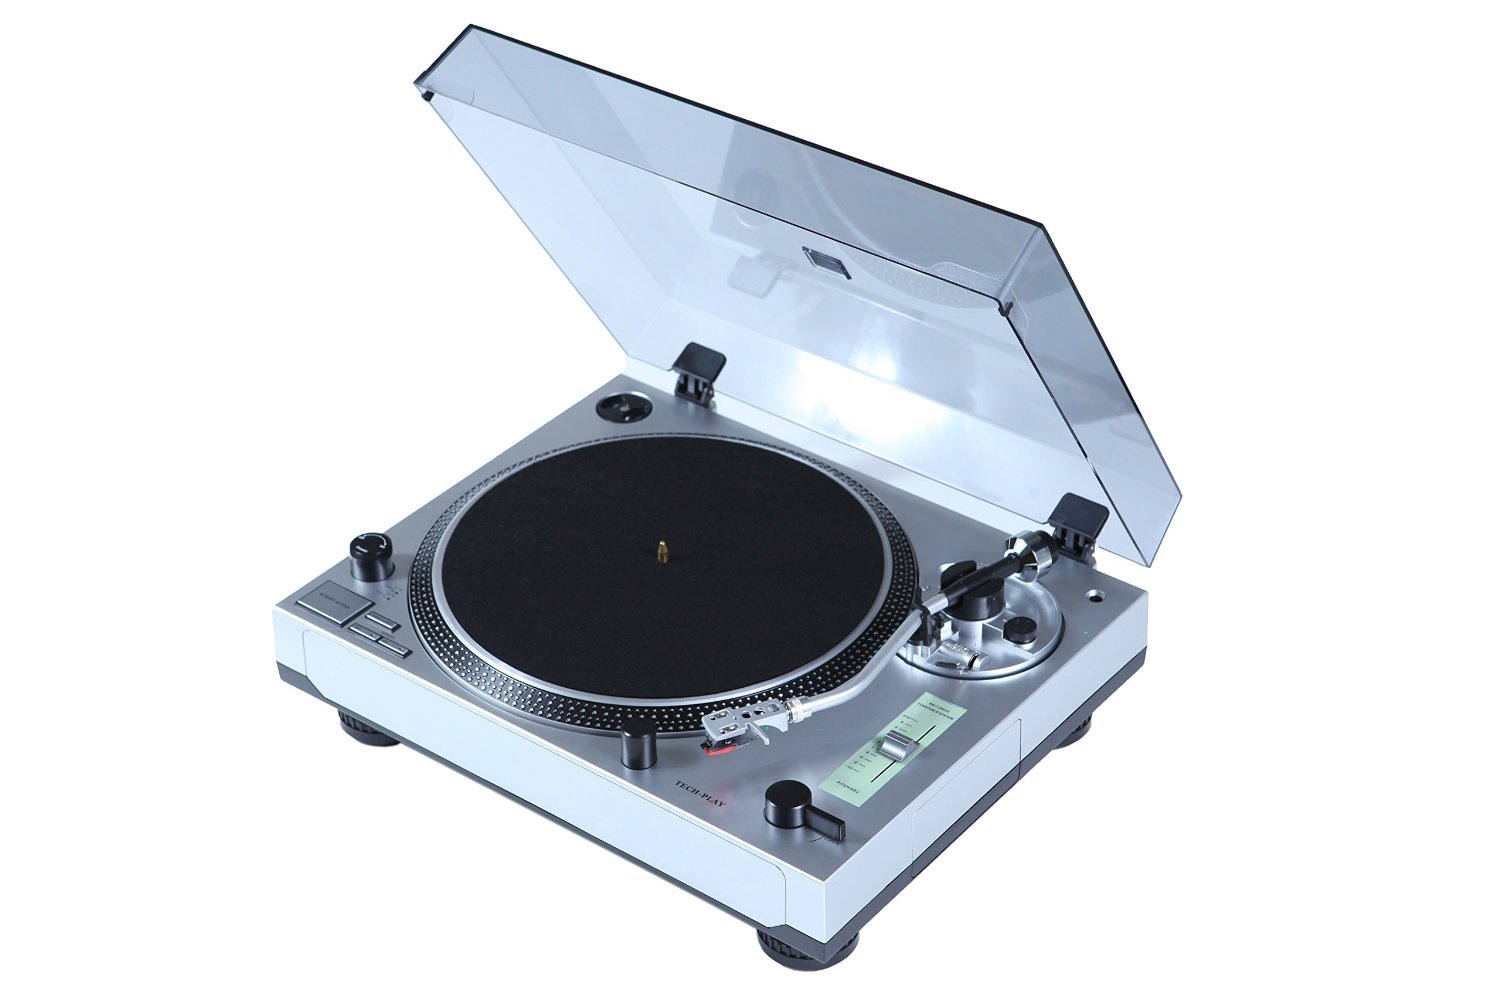 TechPlay ODC21MKI-SL Fully Automatic Turntable, Aluminum tray,+/